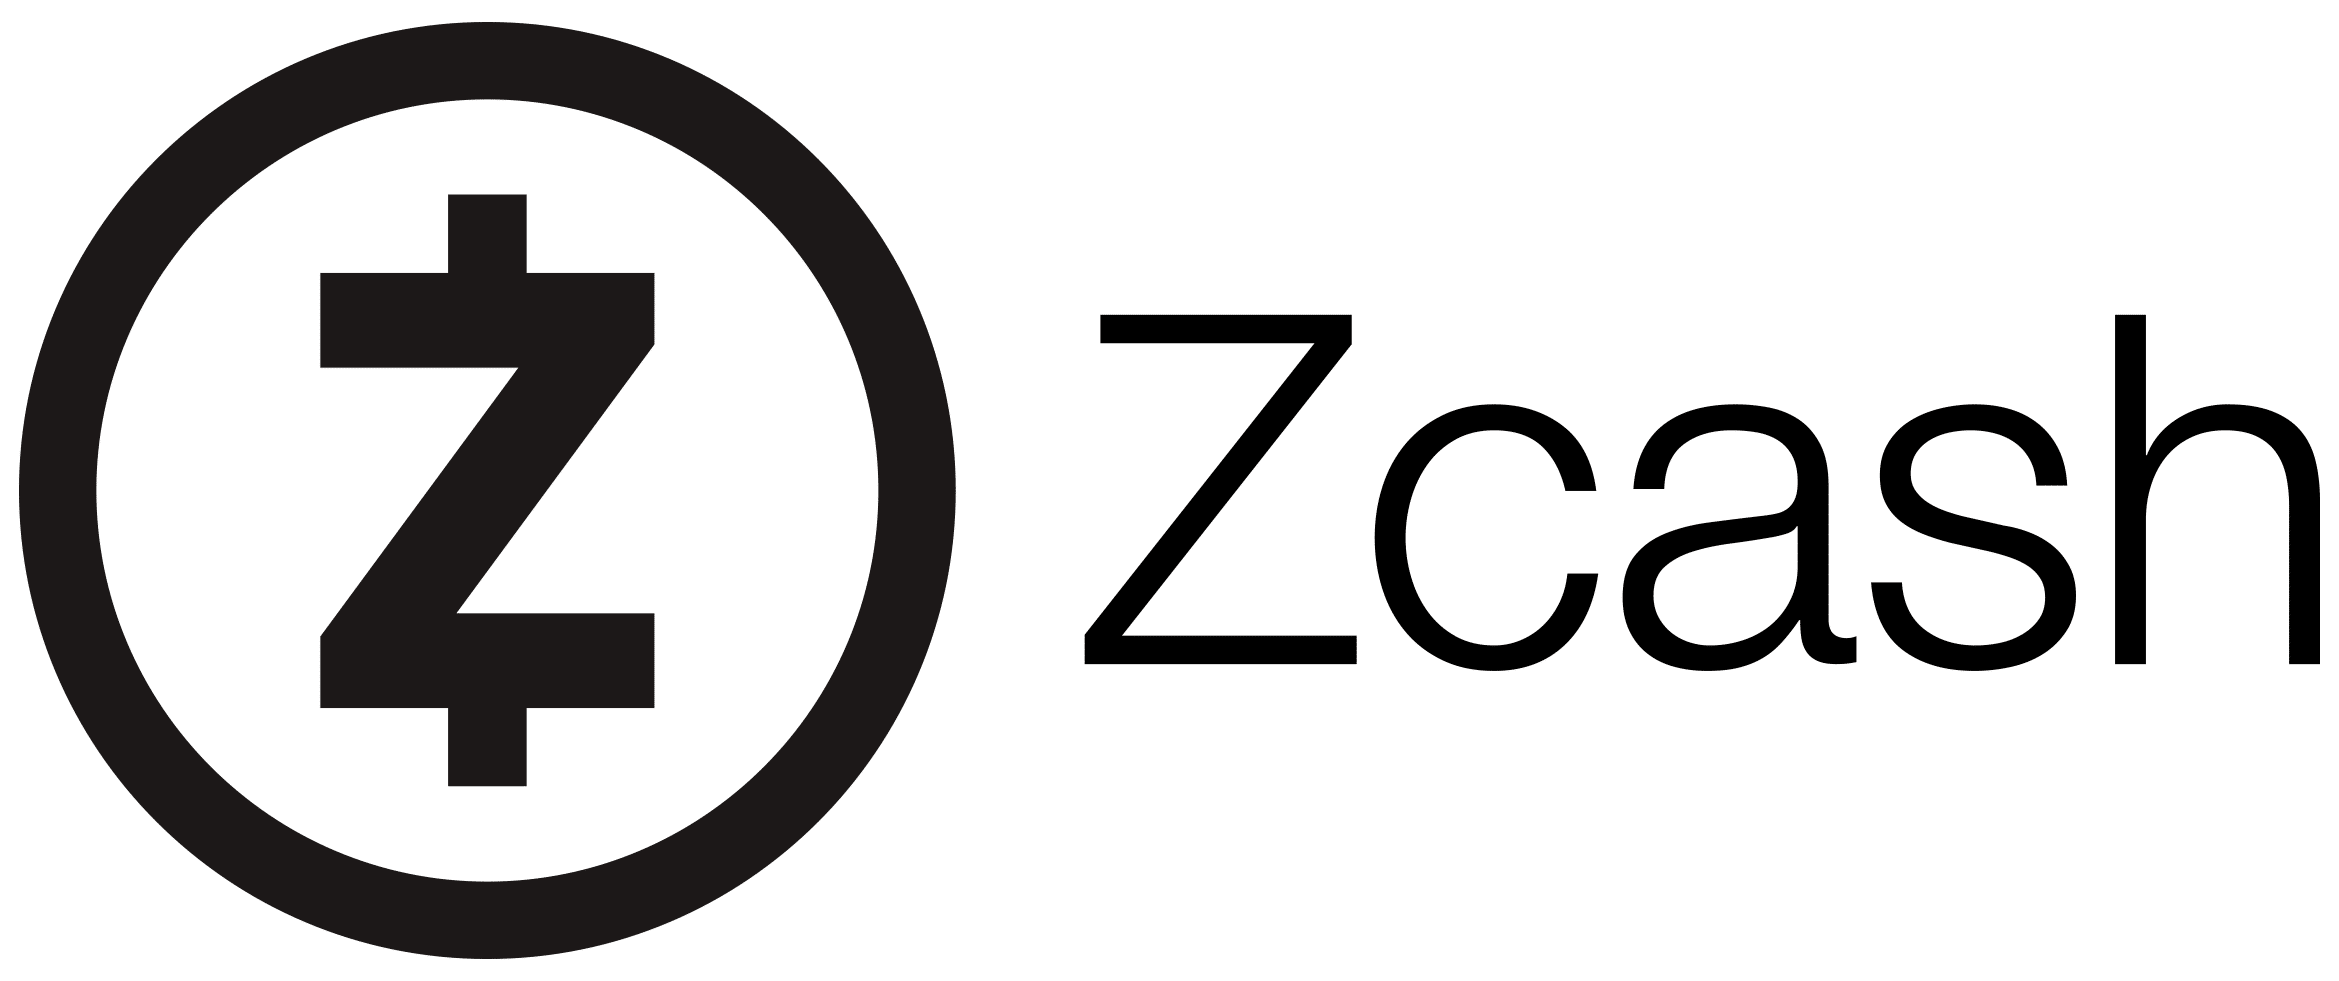 Black horizontal Zcash logo